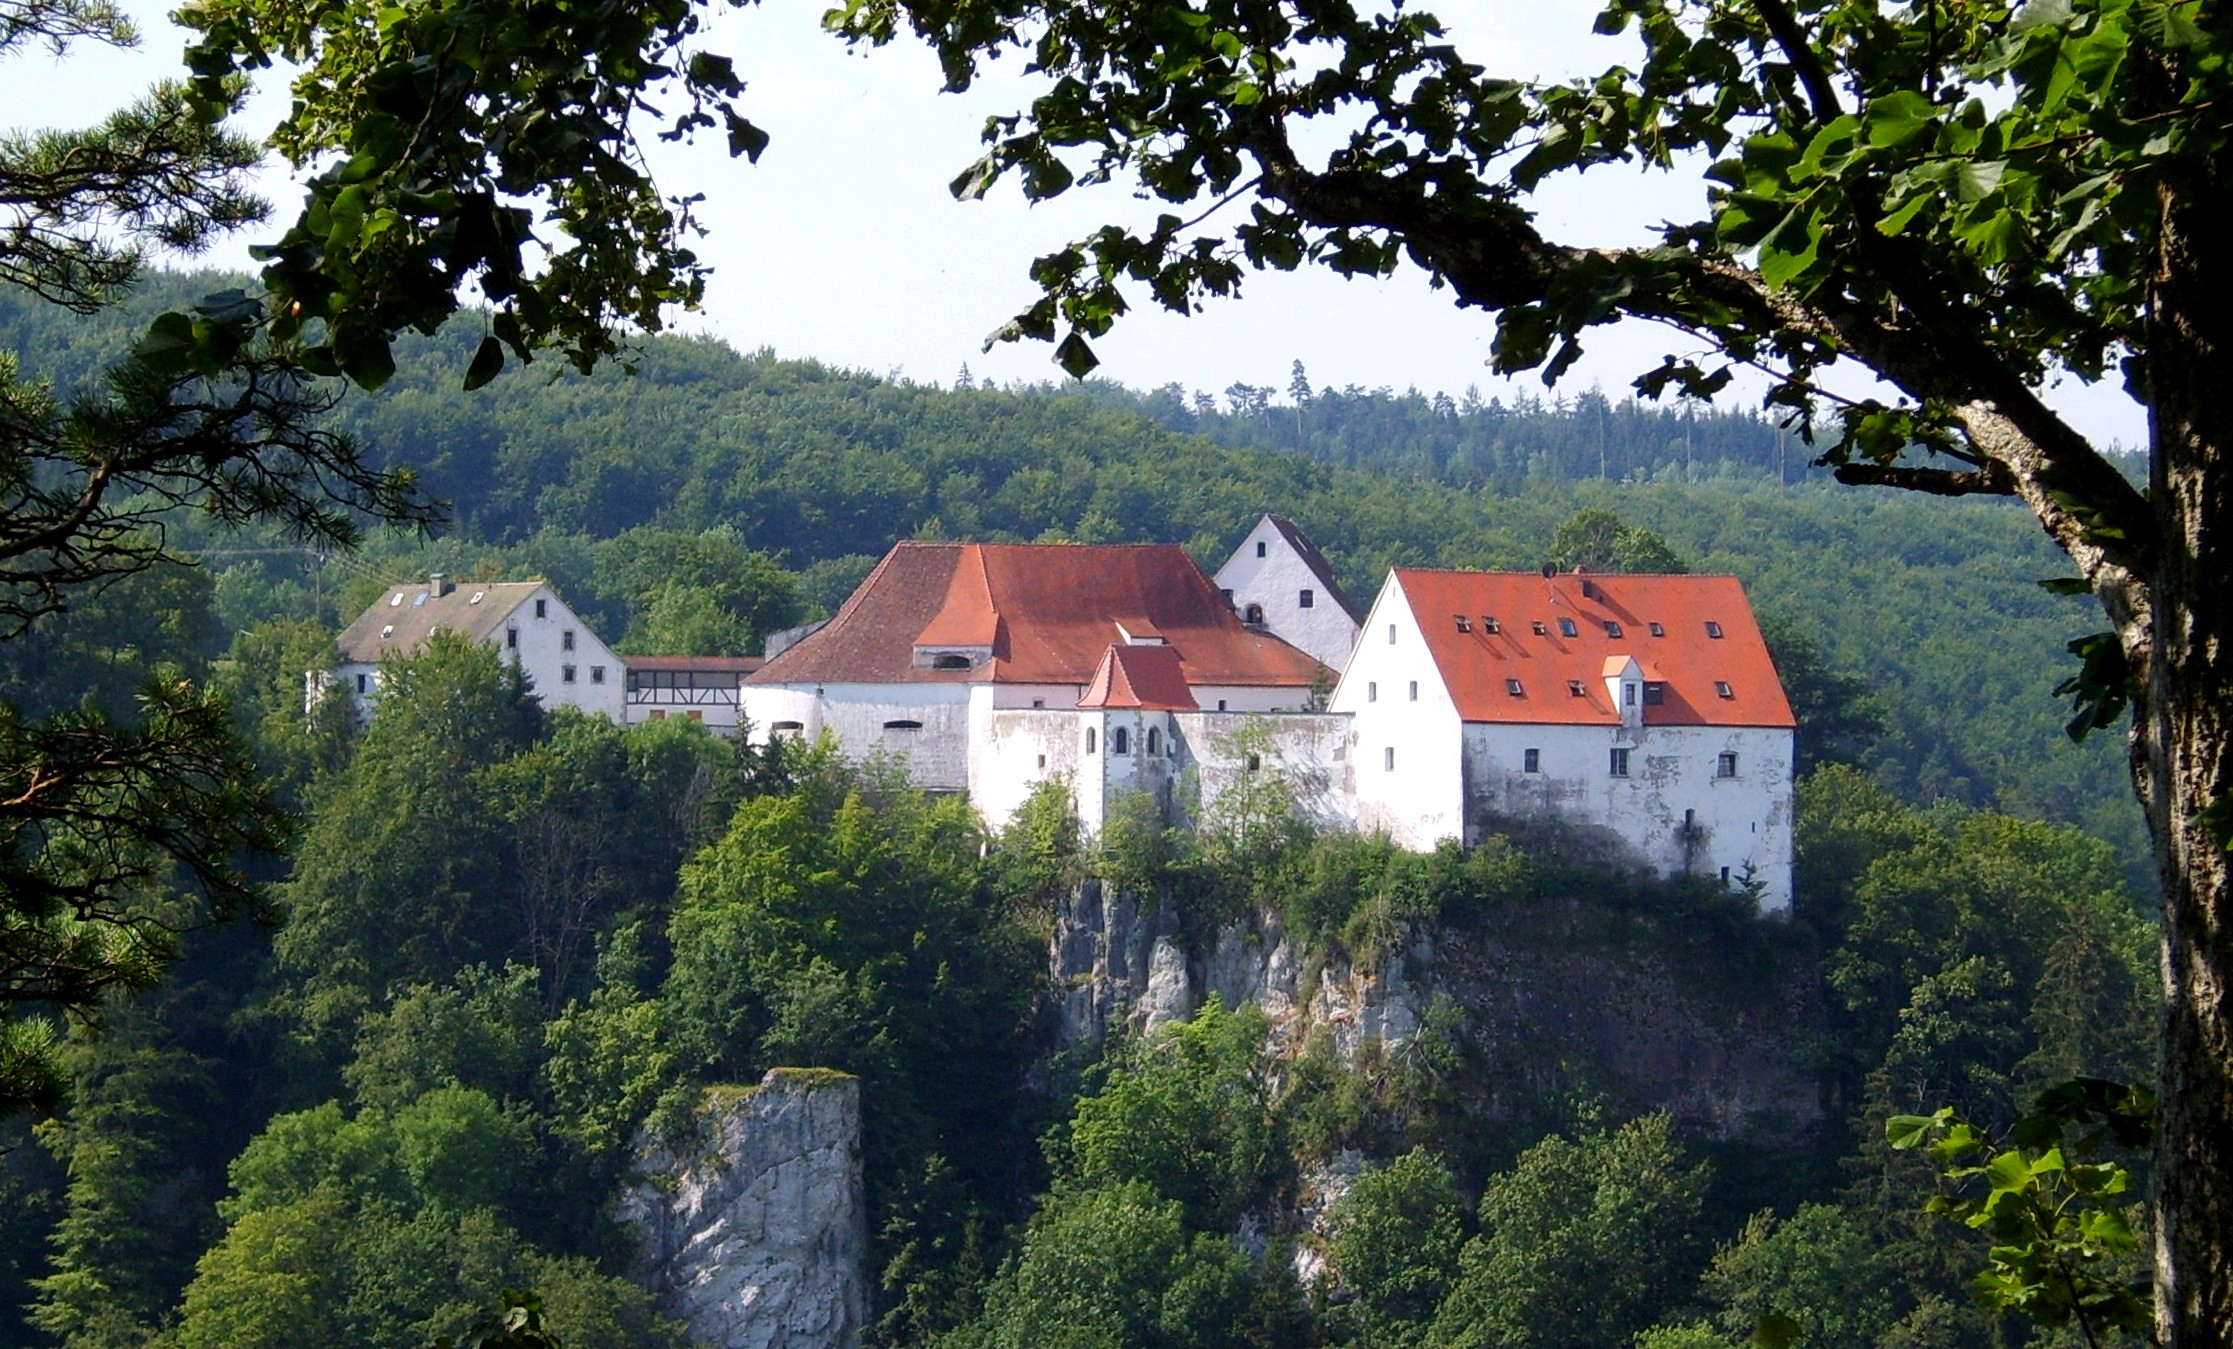 Wildenstein, Leibertingen